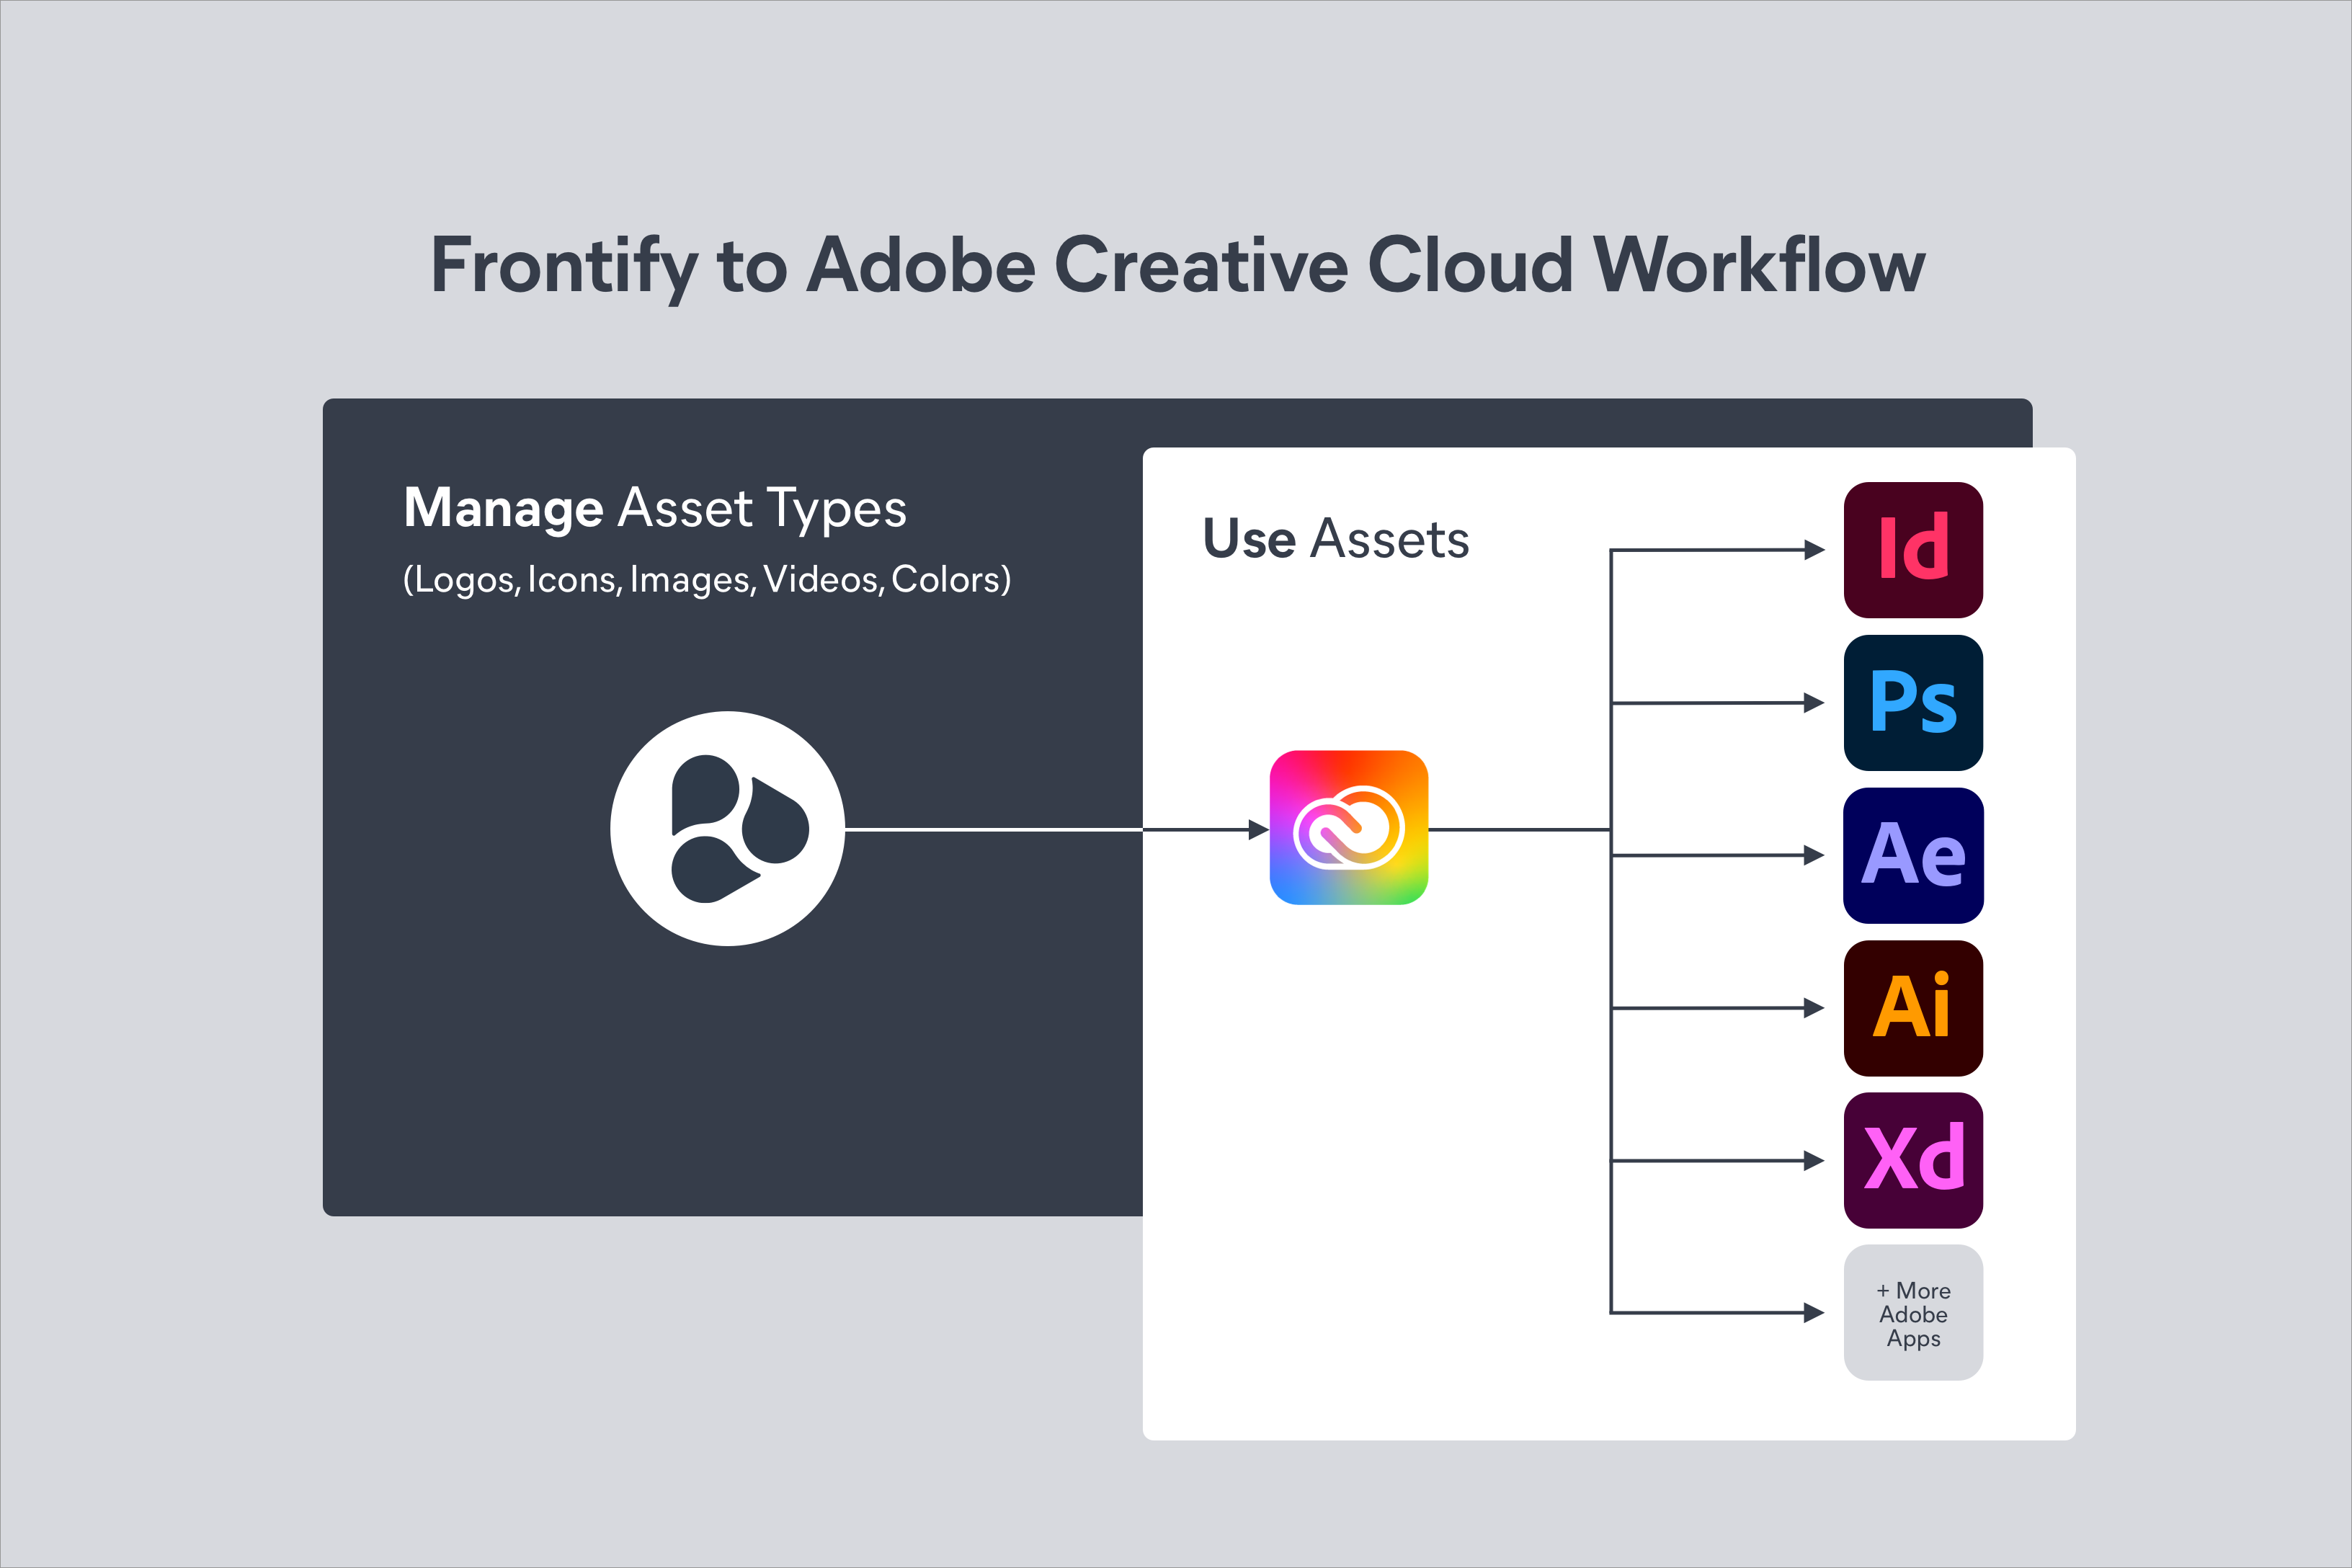 Frontify to Adobe Creative Cloud Workflow